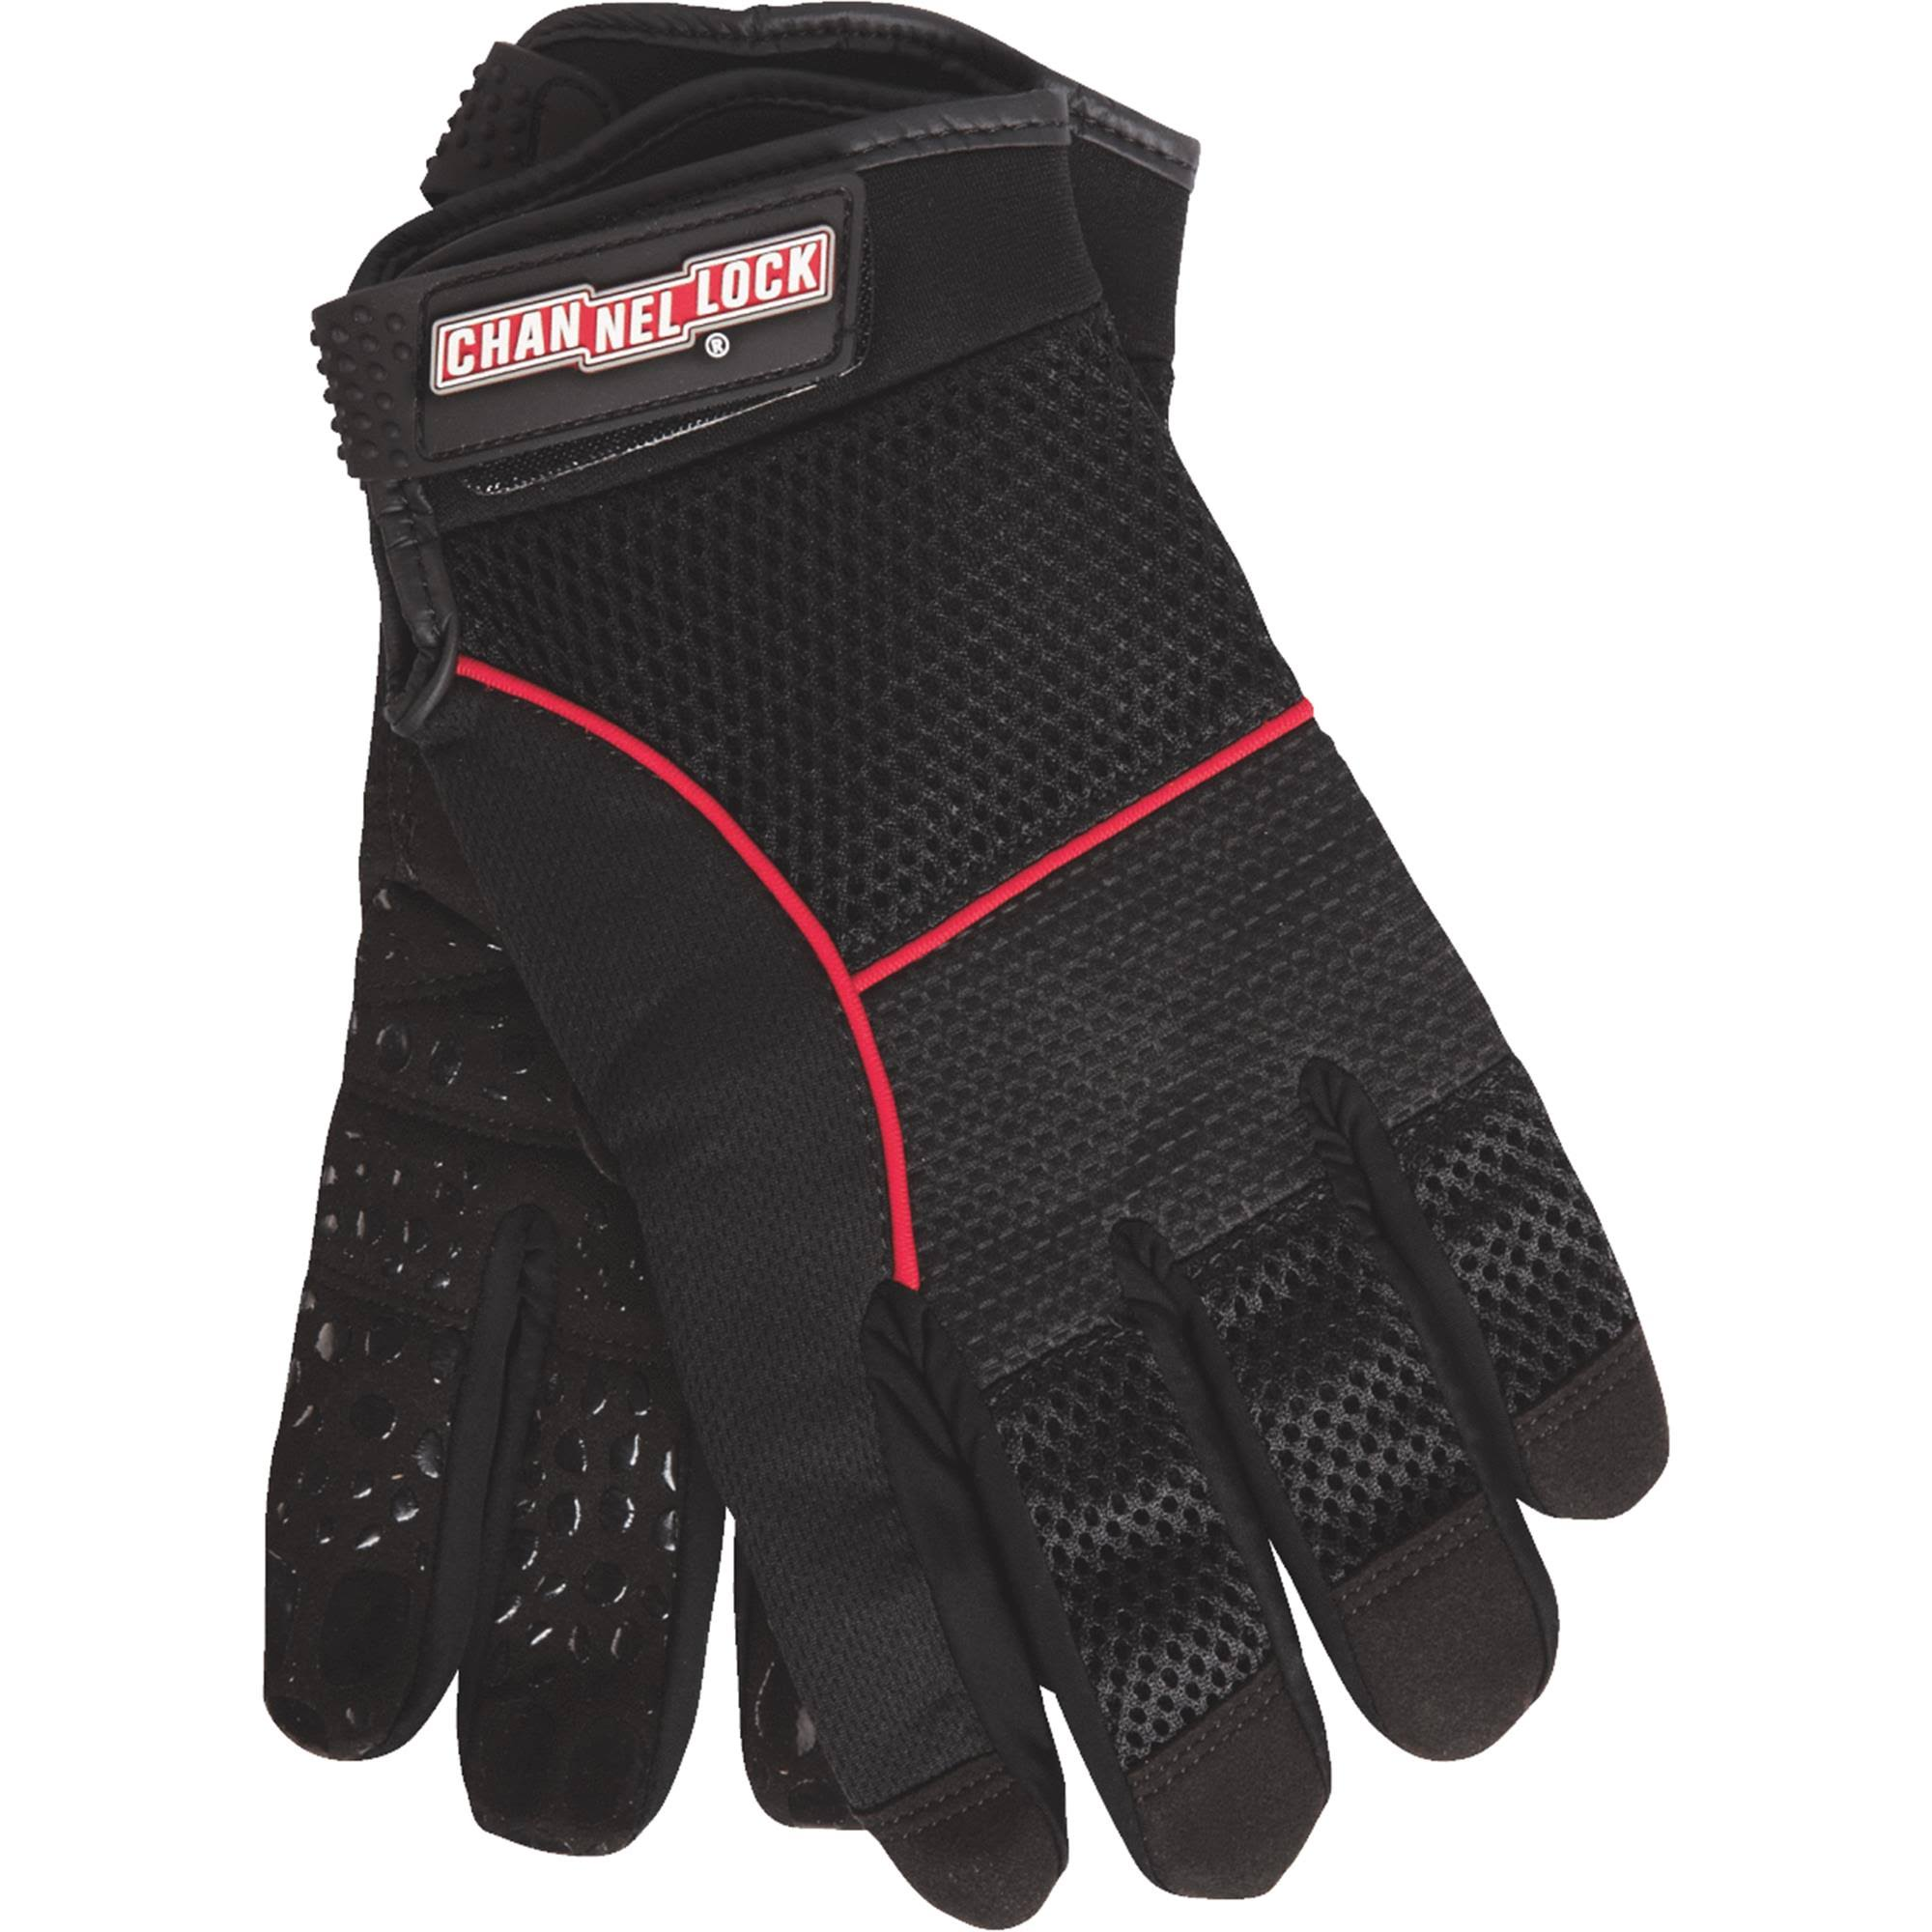 Channellock Utility Grip High Performance Glove 760522